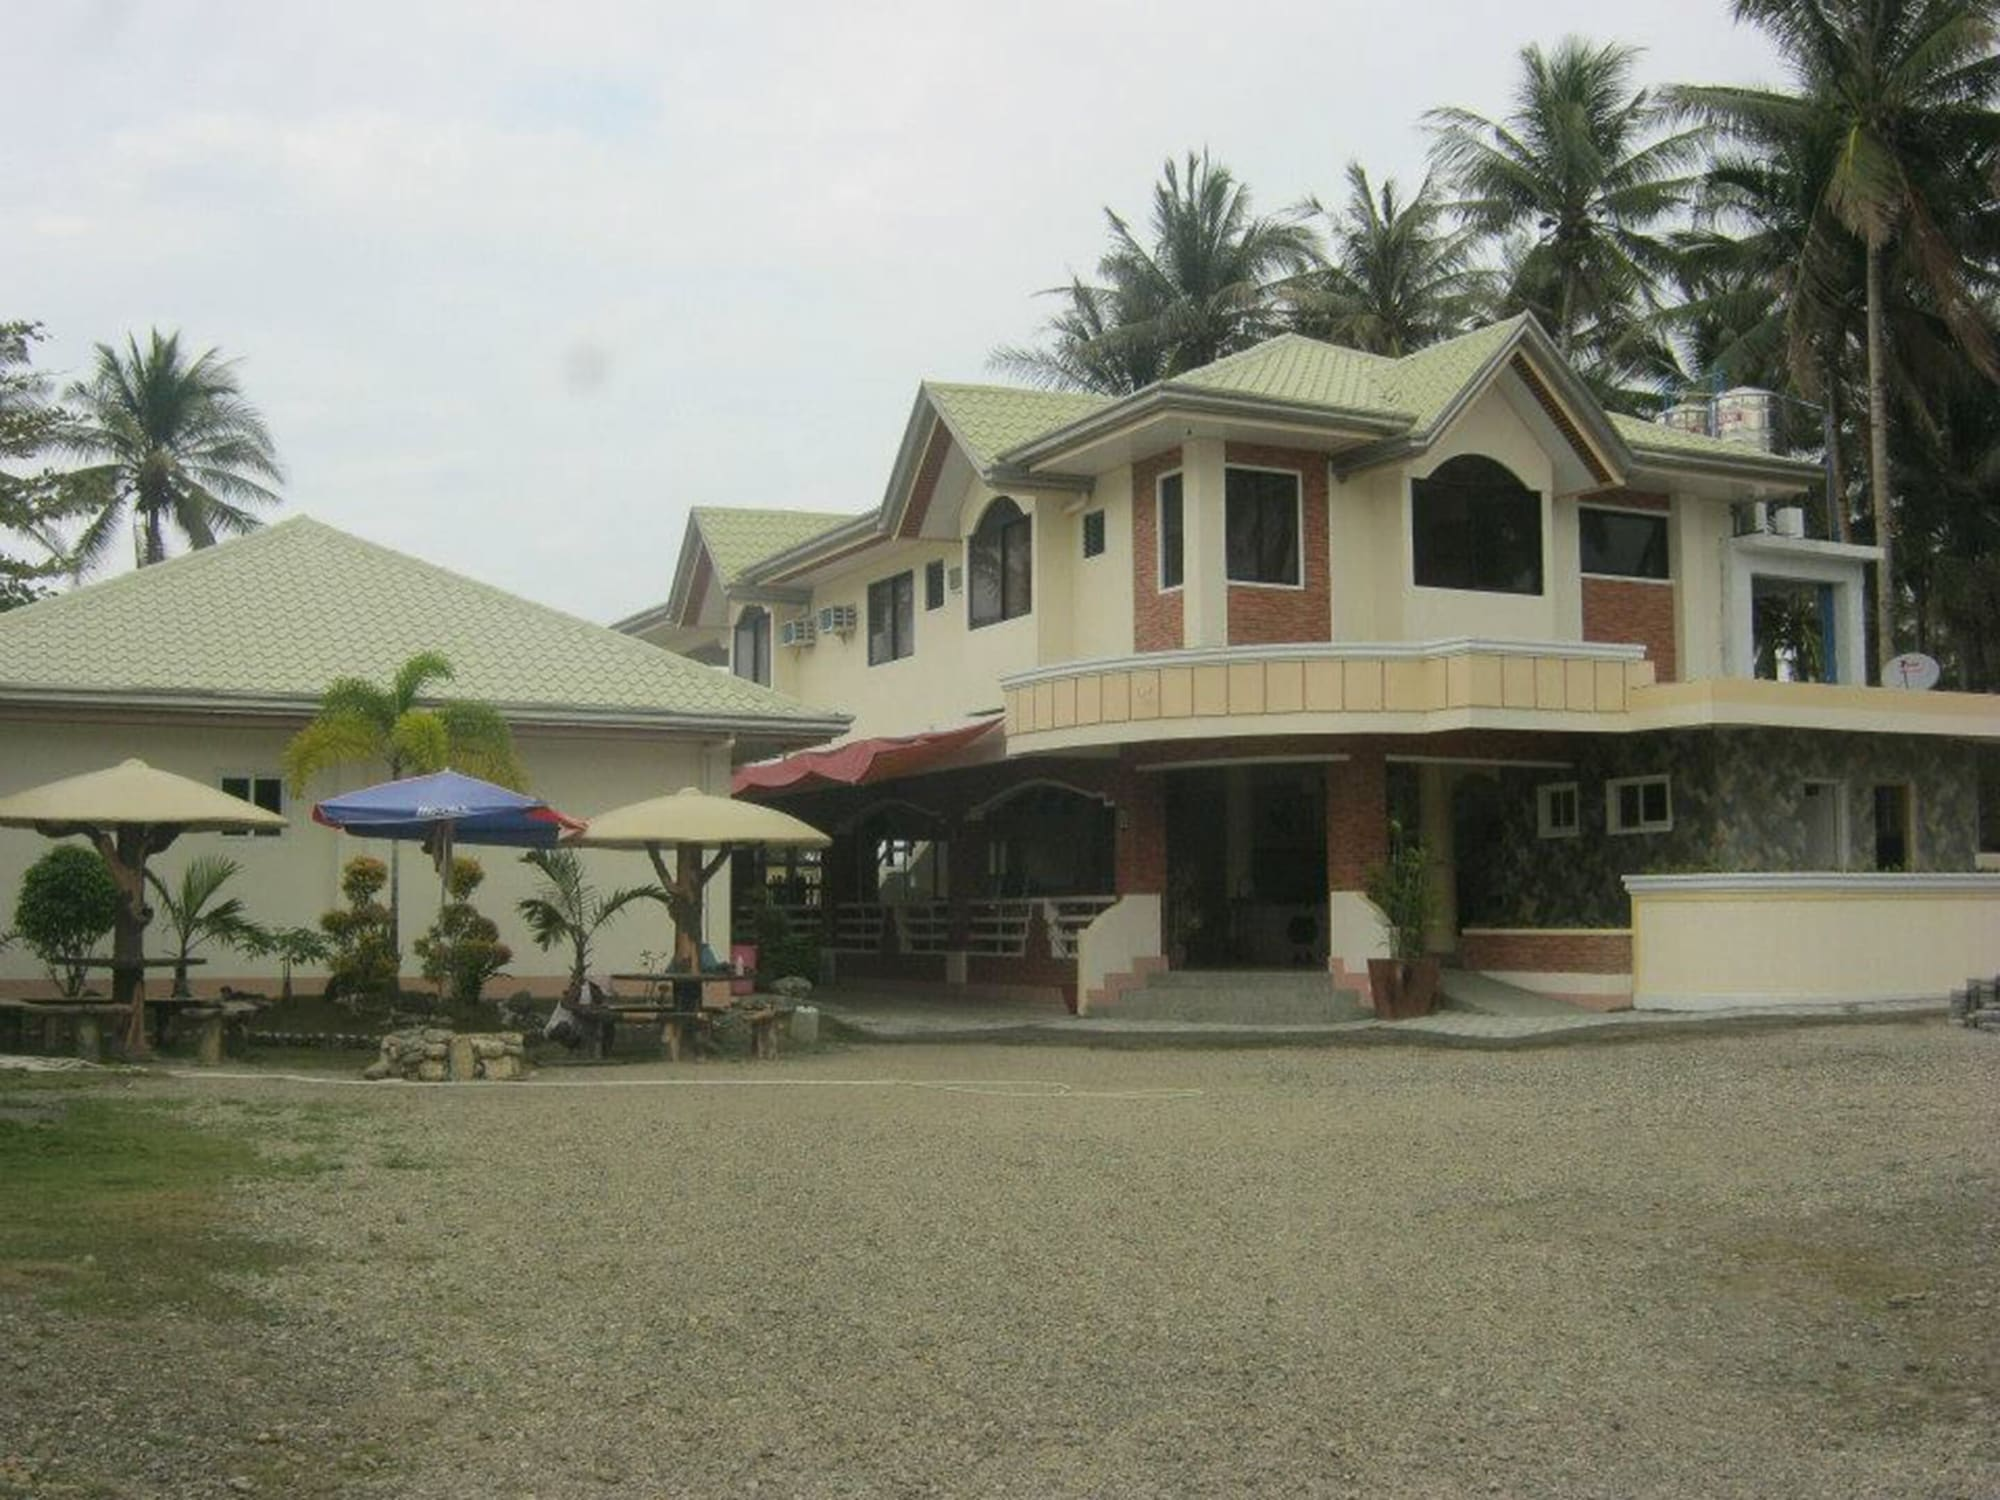 Hiland Beach Resort, Odiongan